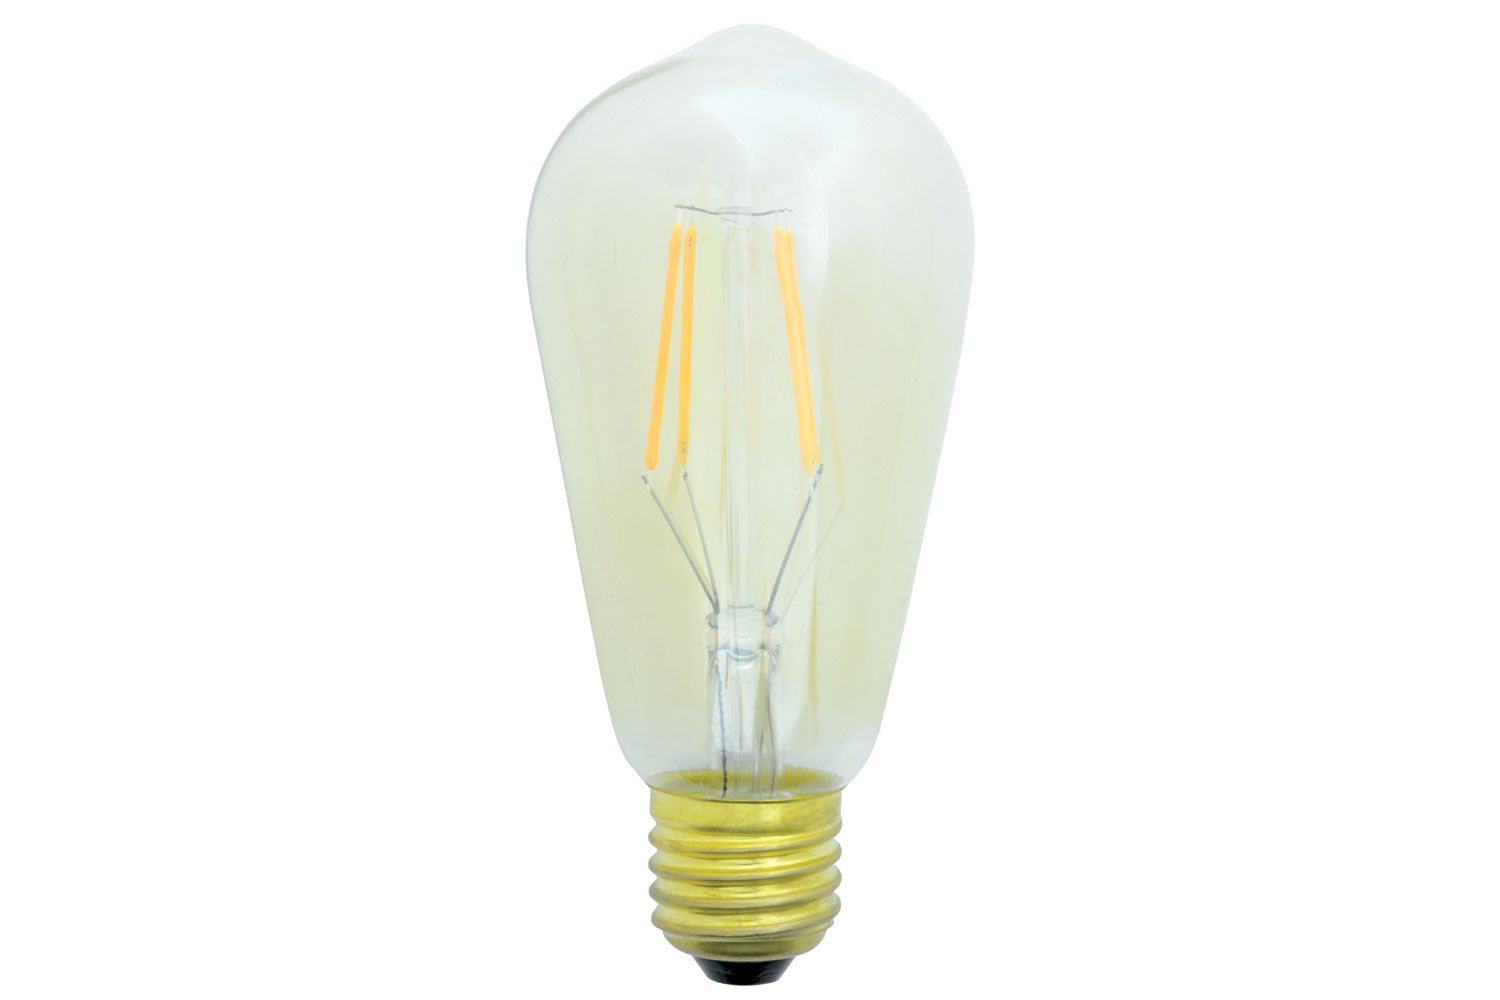 lyyt ST58 LED Filament Lamp with Amber Tinted Glass E27 4W Dimmable